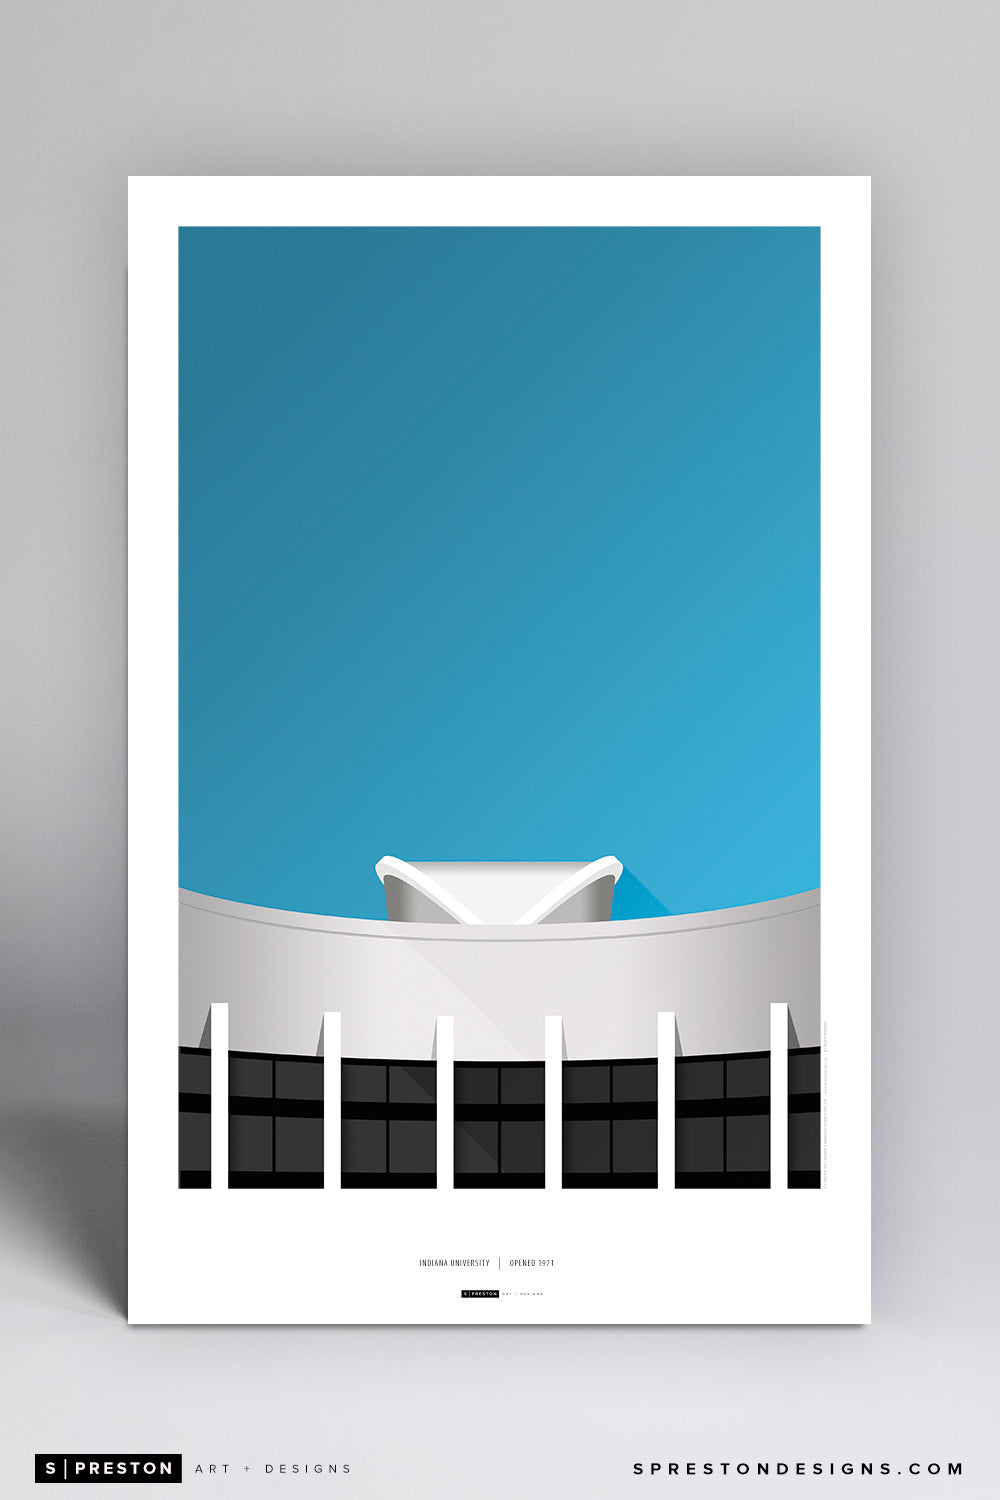 Minimalist Assembly Hall Poster Print - Indiana University - S. Preston Art + Designs